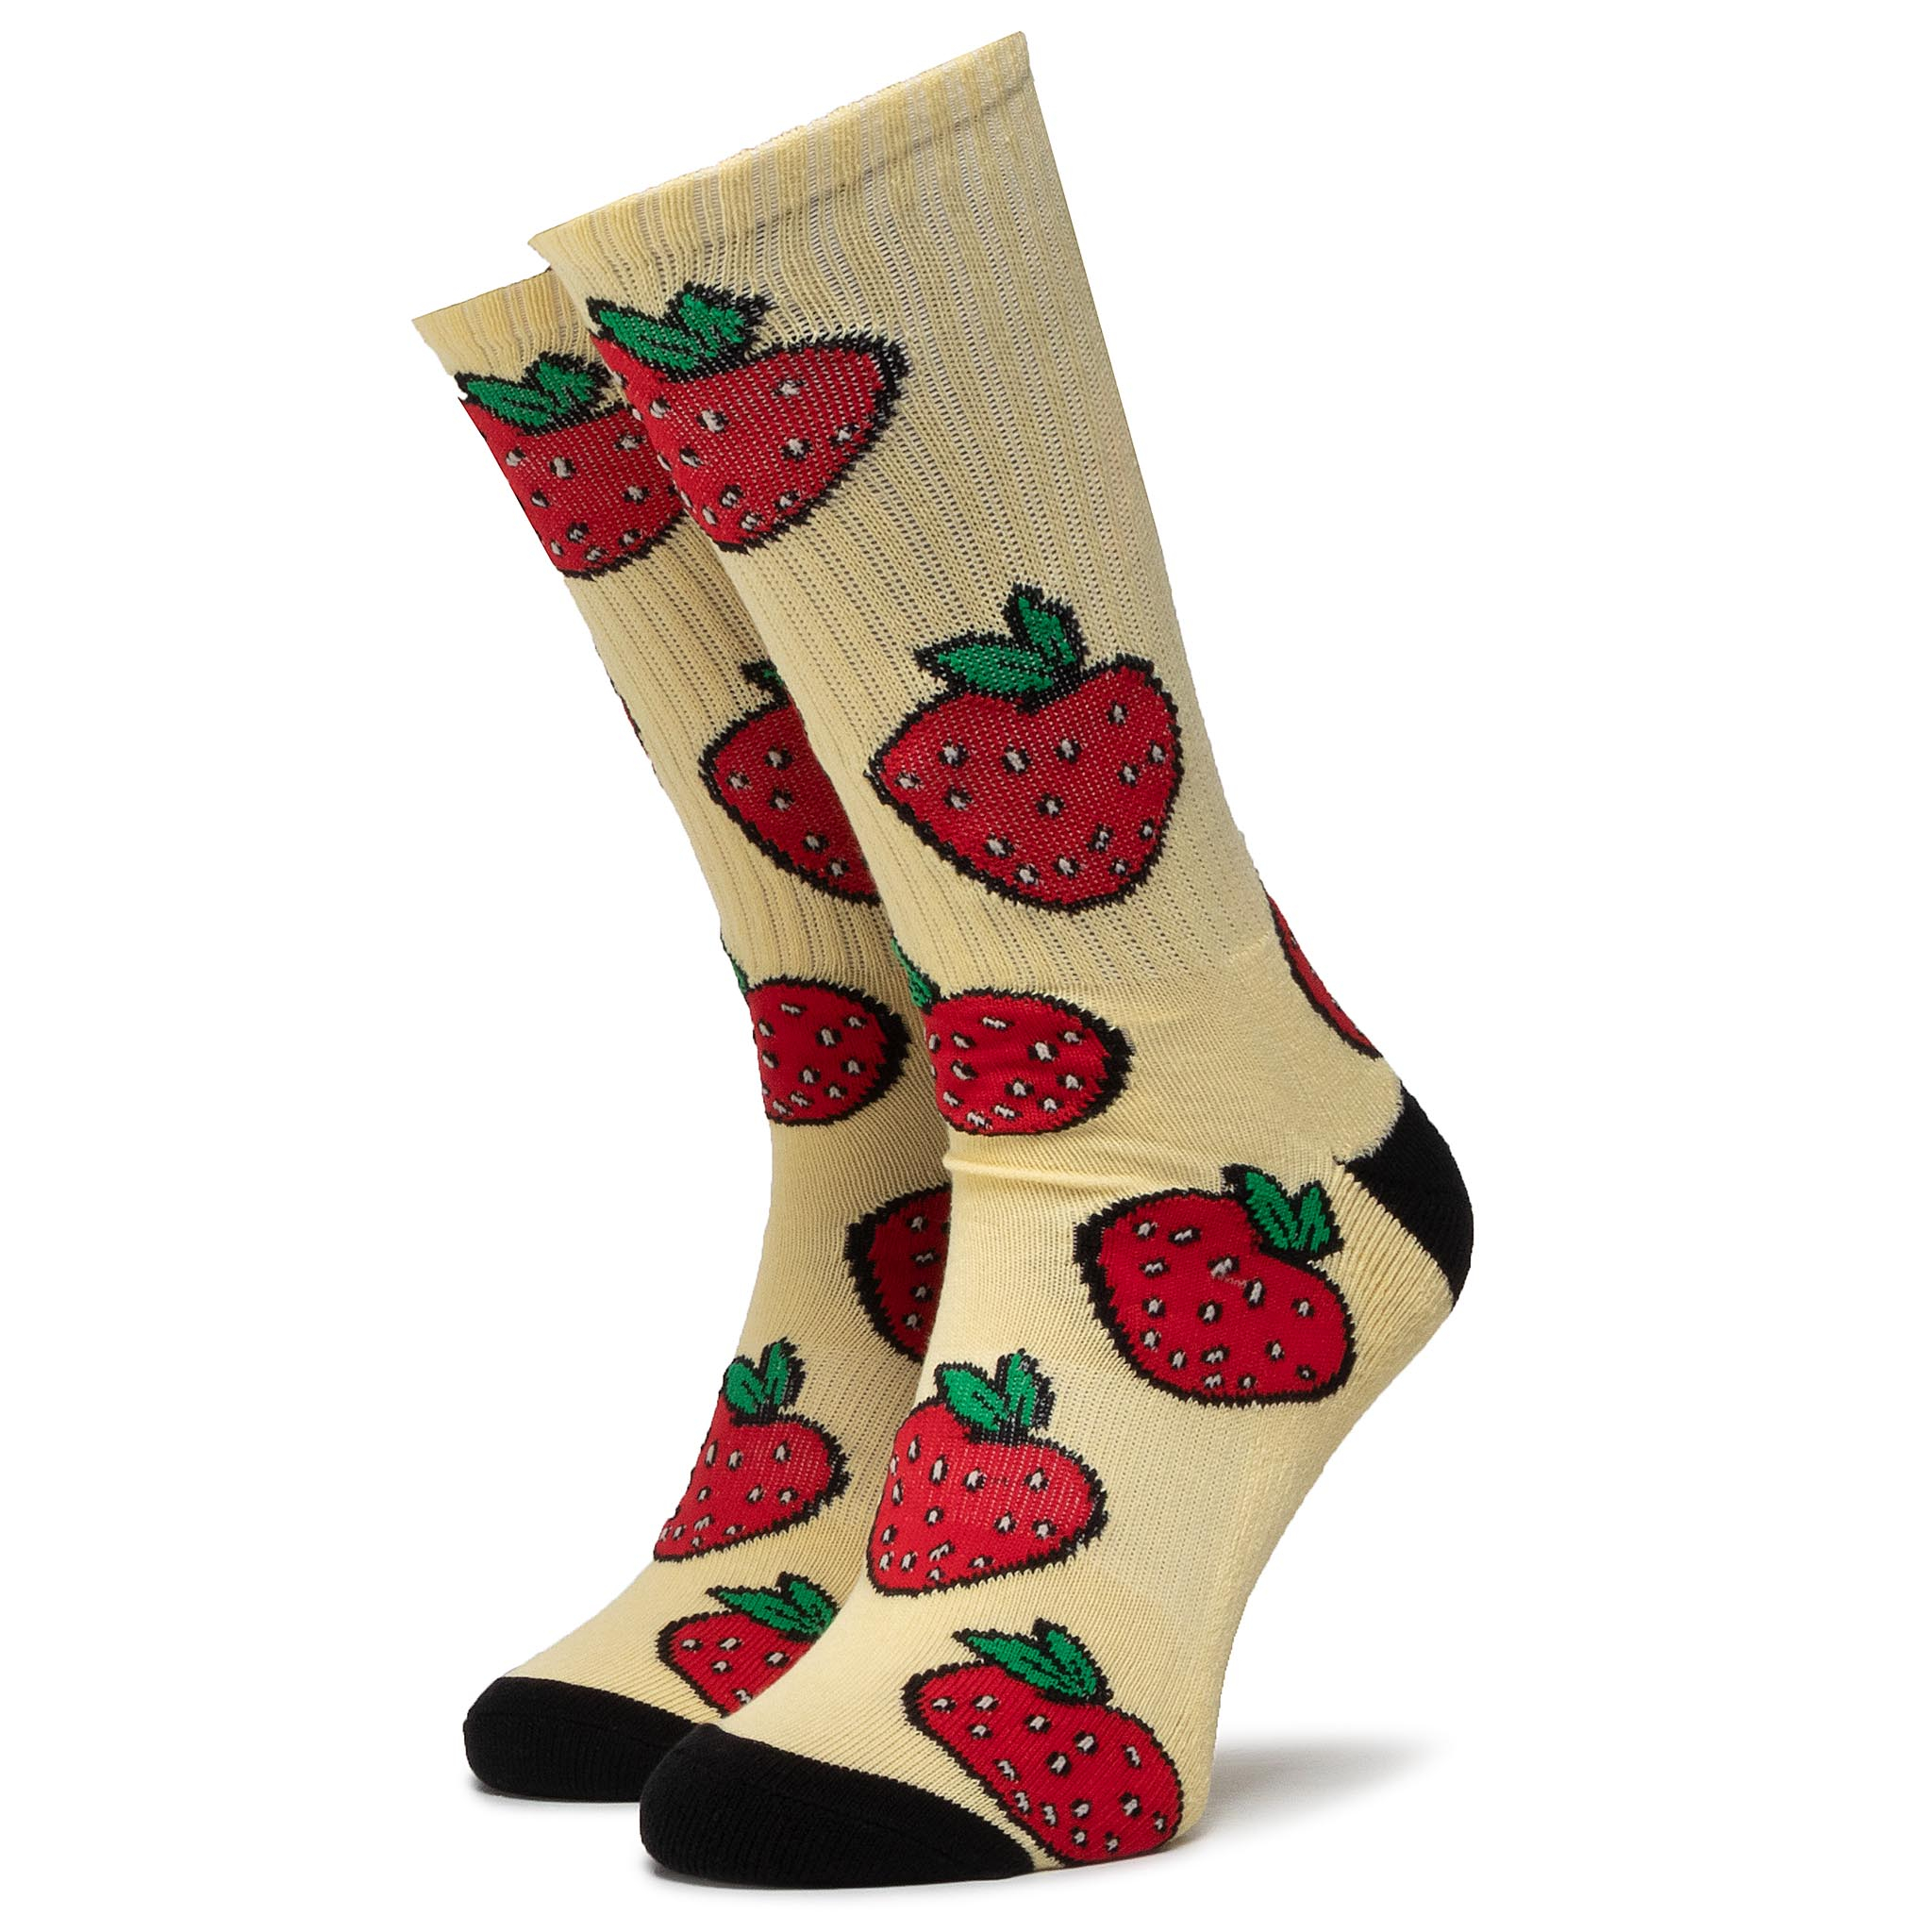 Șosete Înalte Unisex Huf - Strawberry Sock Sk0046 R.Os Pale Lemon imagine epantofi.ro 2021